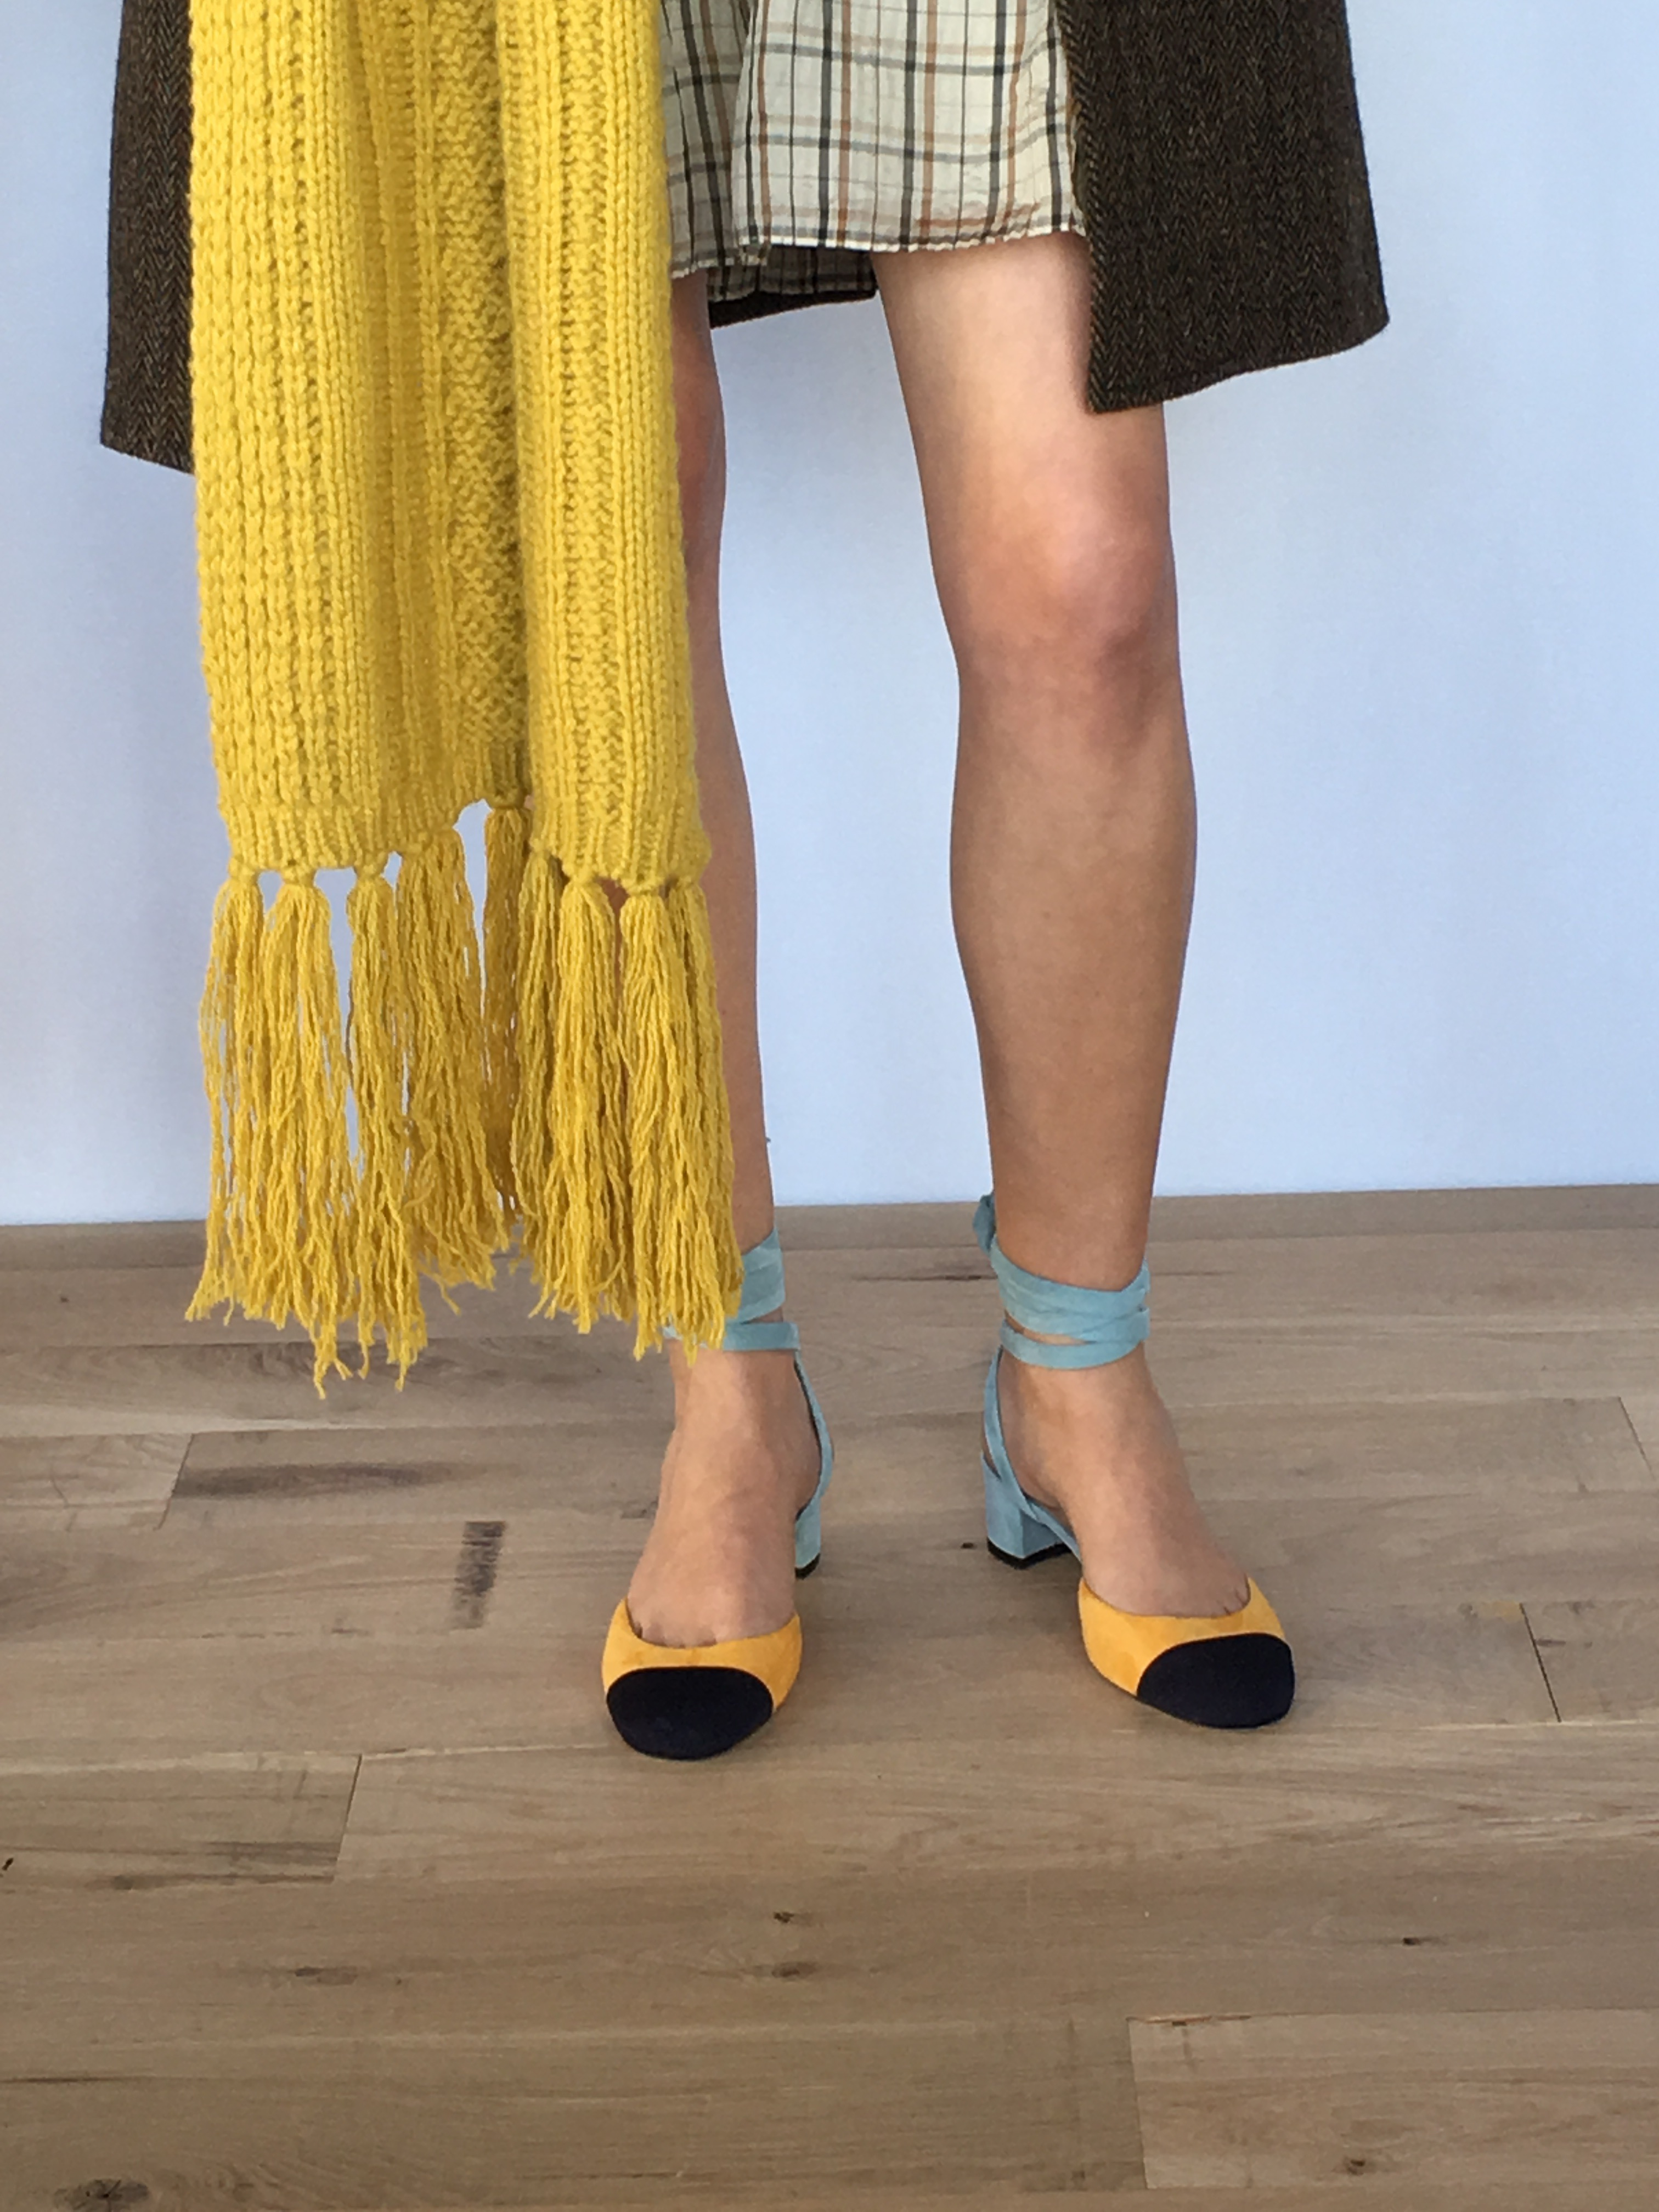 get-the-look-j-crew-nyfw-fall-winter-look-shoes-5